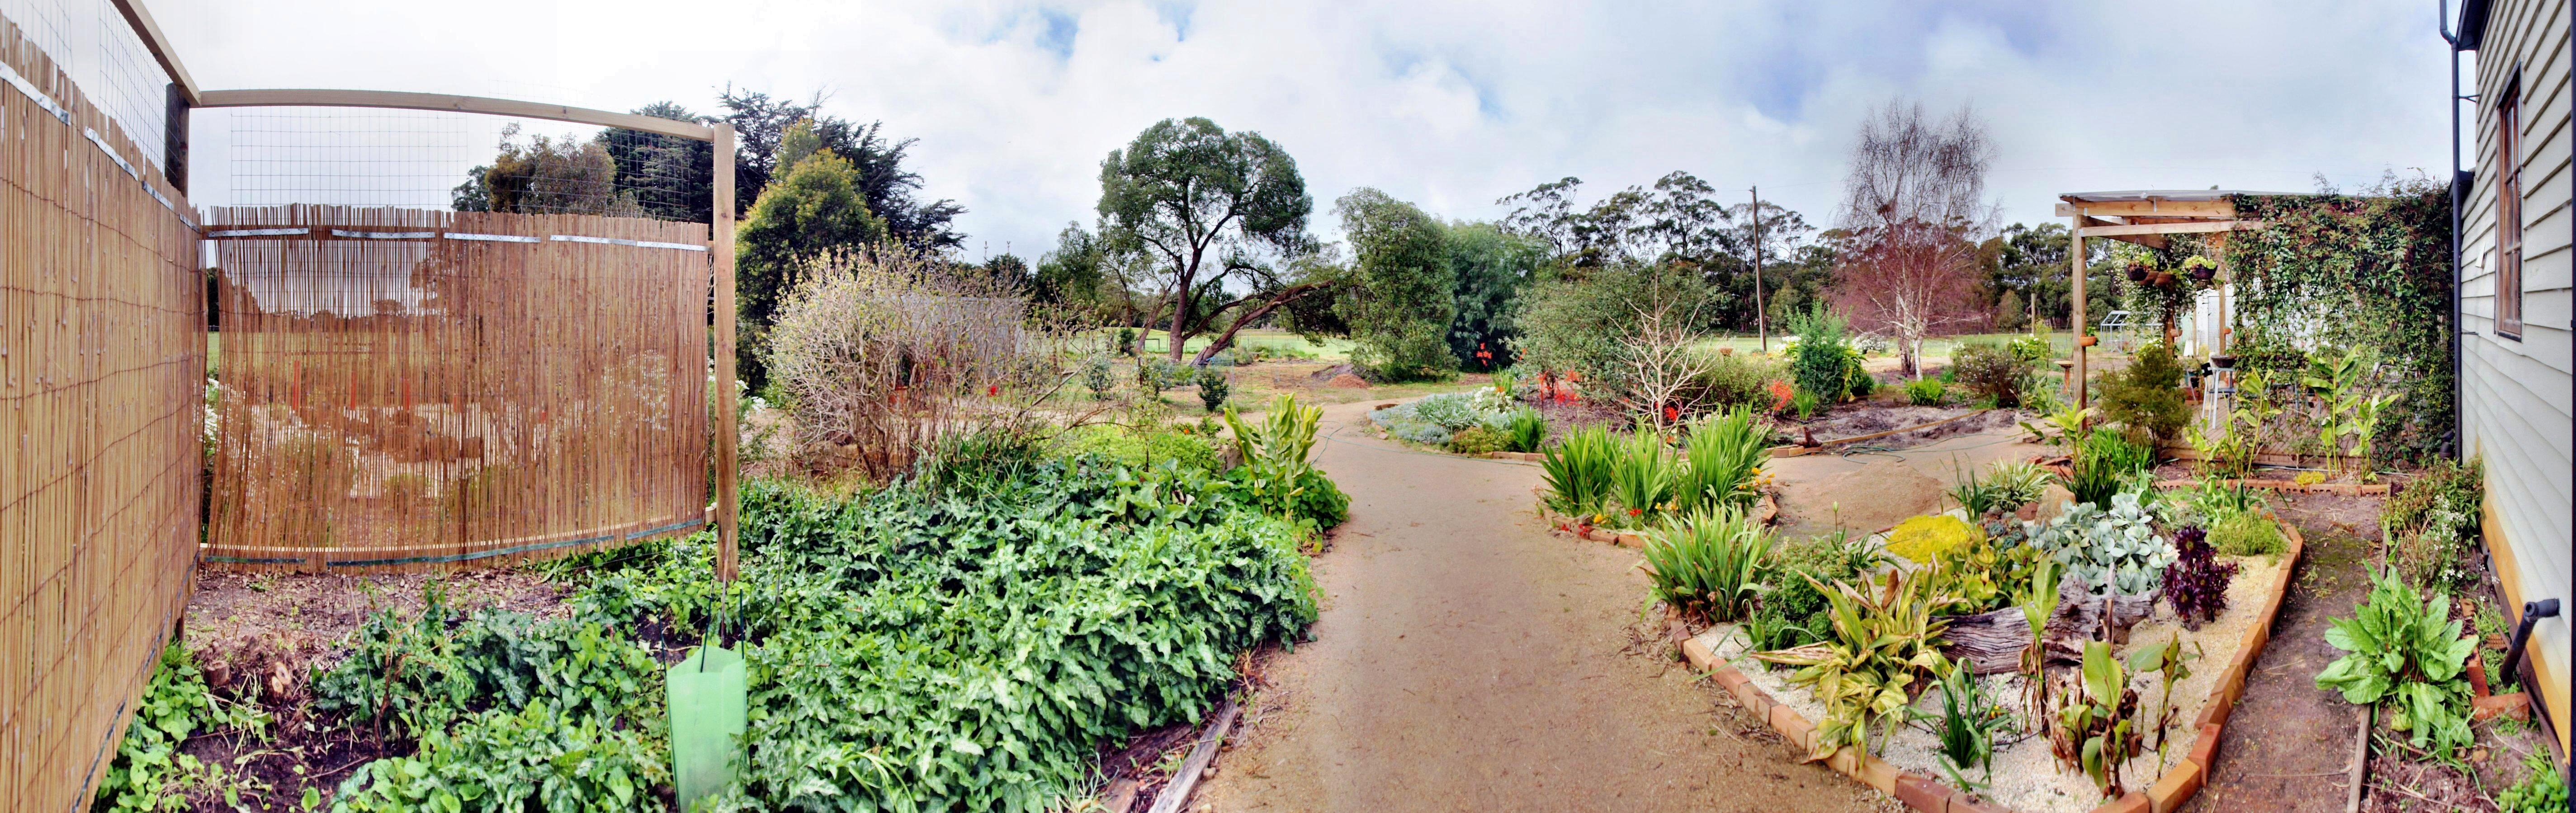 This should be garden-se-panorama.jpeg.  Is it missing?